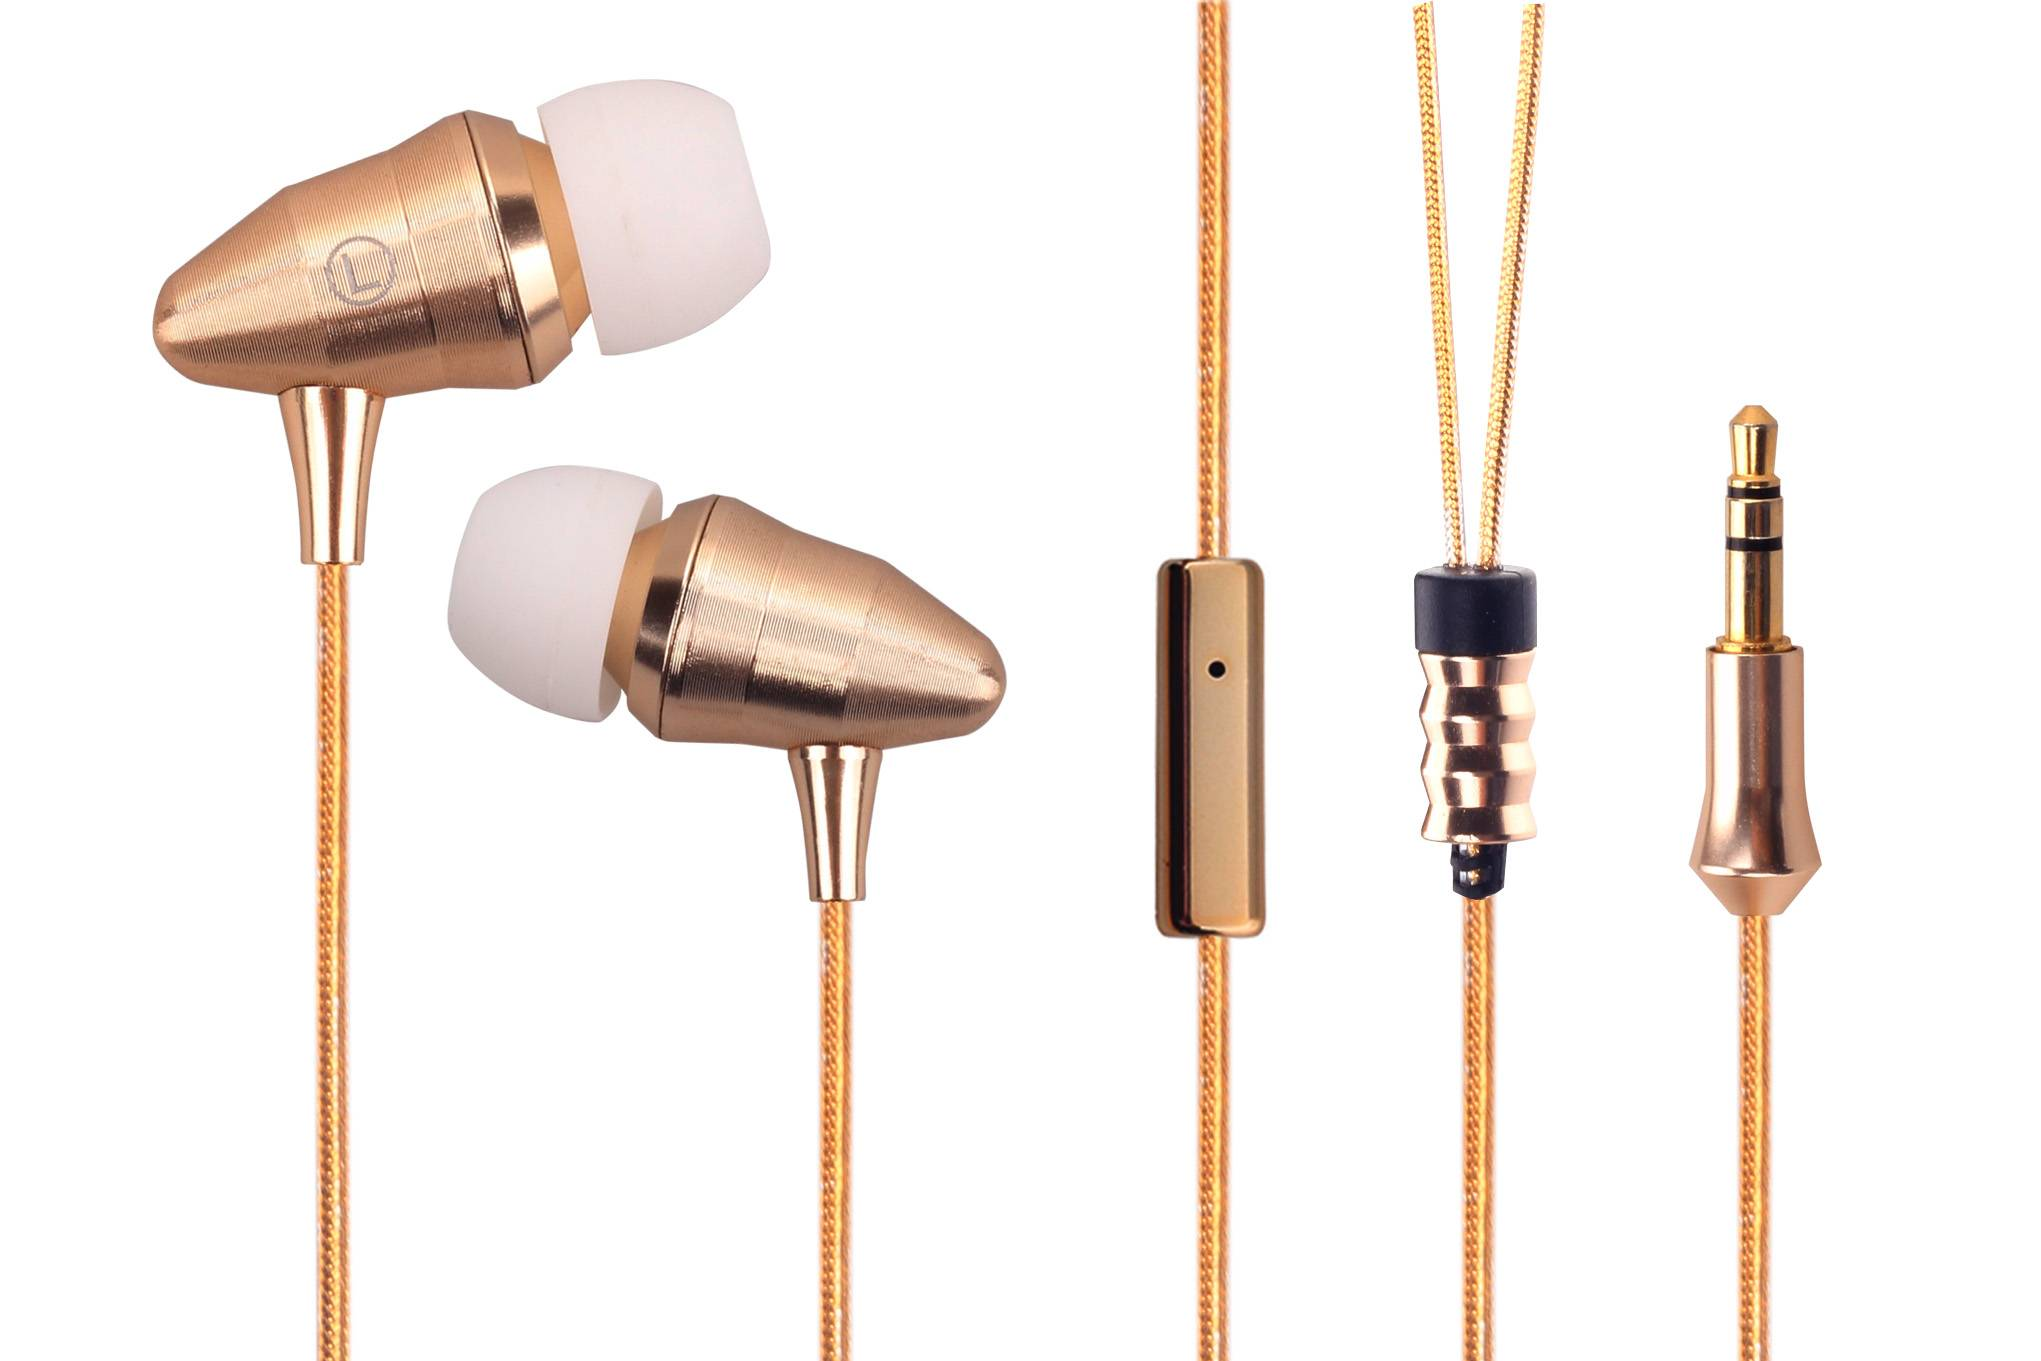 Latest Metal Shell Earphone With Unique Apperance and High Quality Sound-Item EP210